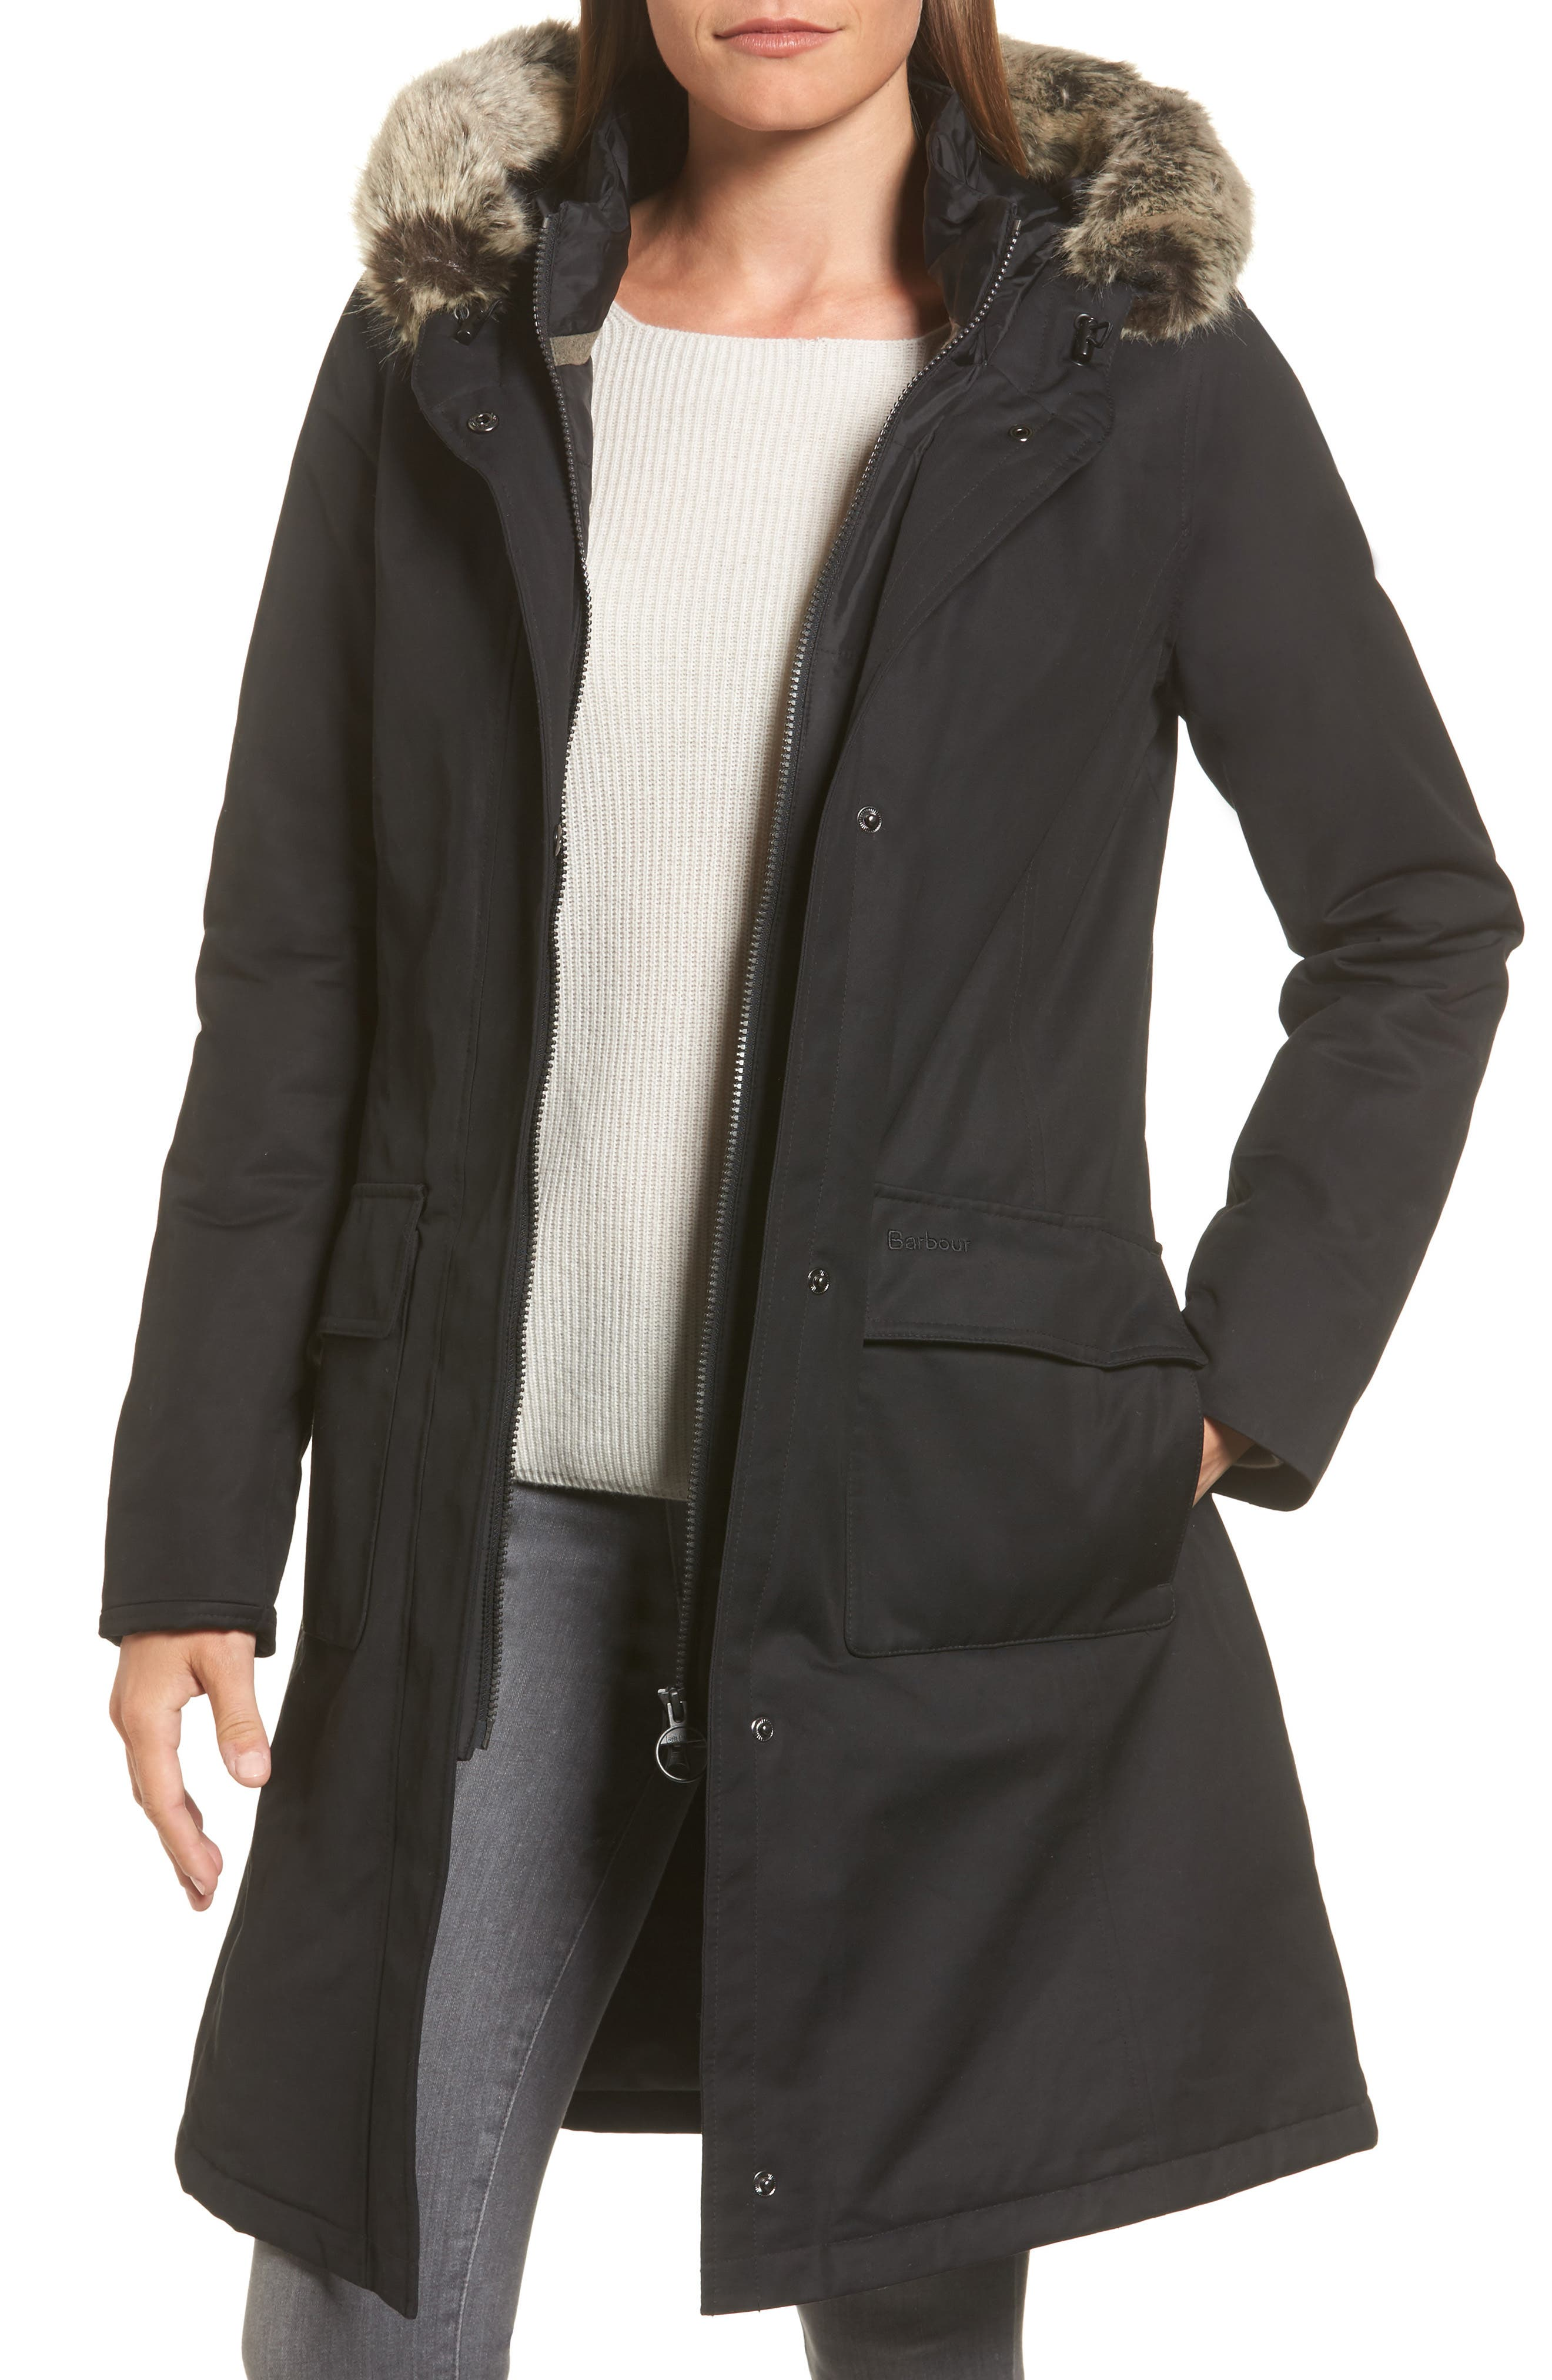 Linton Hooded Waterproof Jacket with Faux Fur Trim,                         Main,                         color, Black